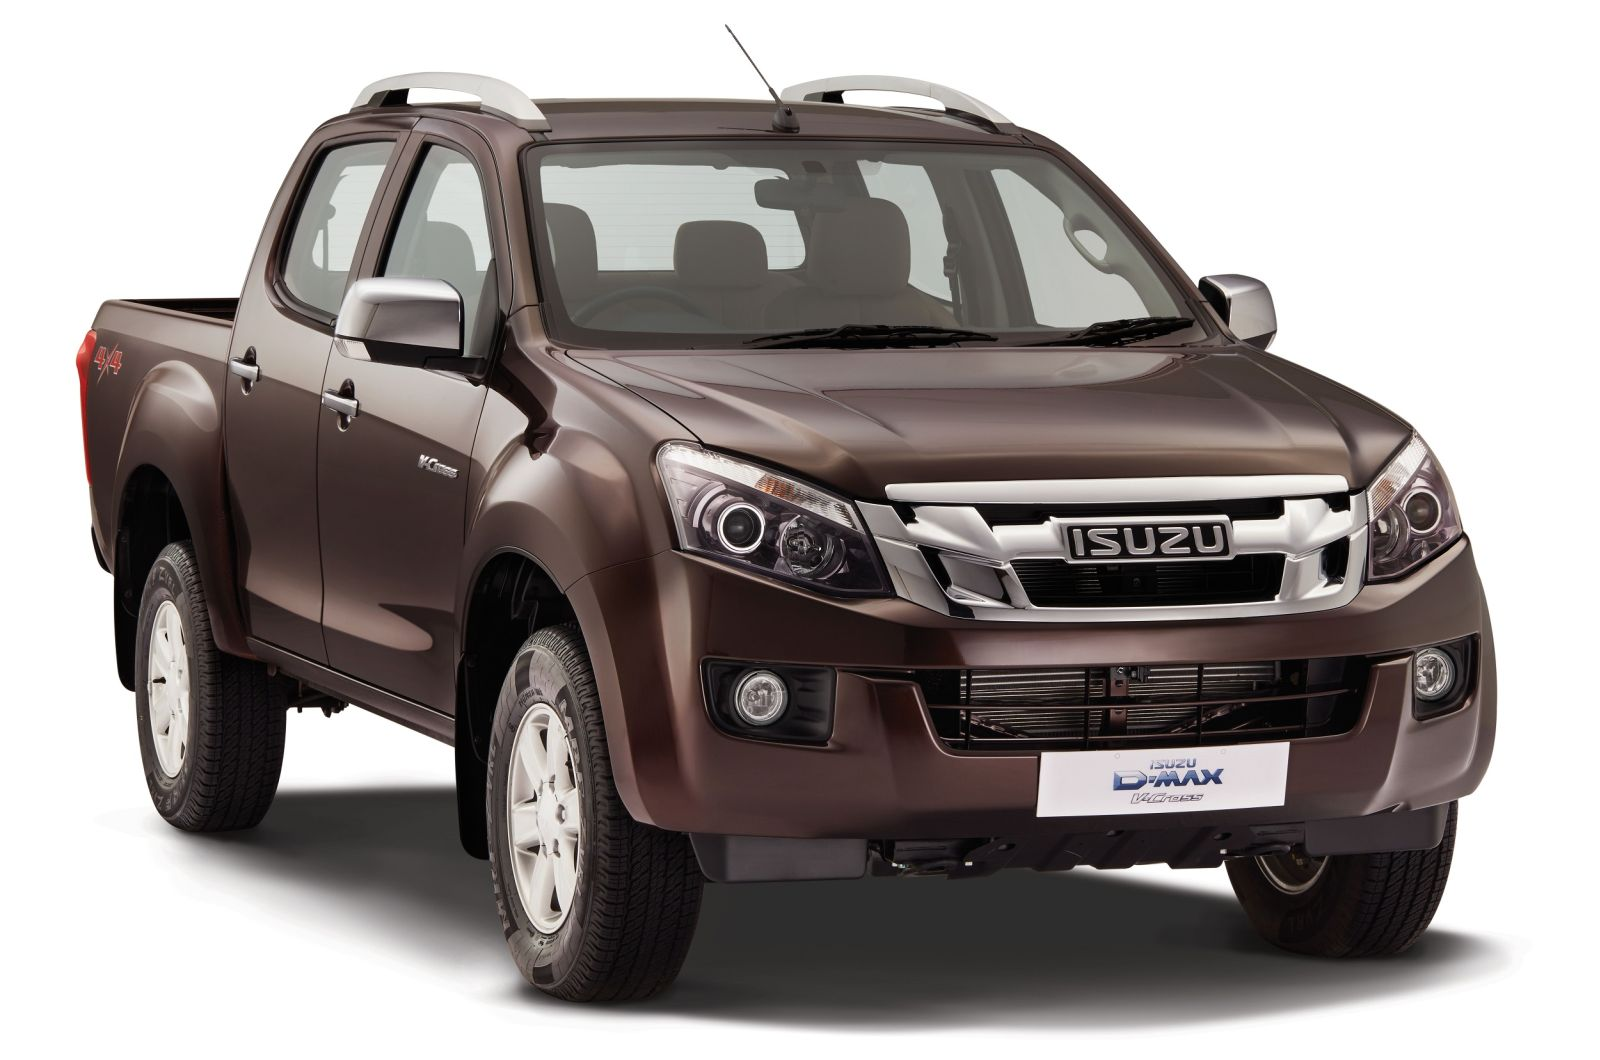 Sundar Pichai Family furthermore Isuzu D Max V Cross Adventure Utility Vehicle Bookings  mence Launched At An Introductory Price Of Rs 12 49 Lakhs further Peugeot 3008 a1327991448b6526181 6 p as well Product Design Machines Eat Cars Nx Solidworks Autocad Teamcenter Keyshot Shot further Car Manufacturing Process Flow Chart 1uNOQtbVibtq TShkmMeLRKYEwjYTg3zy9lua 7ClvzTqmNh3UPdCUfKPOOWPFMvmim35h21zGoxgzP1enQGYSKg. on car manufacturing plant